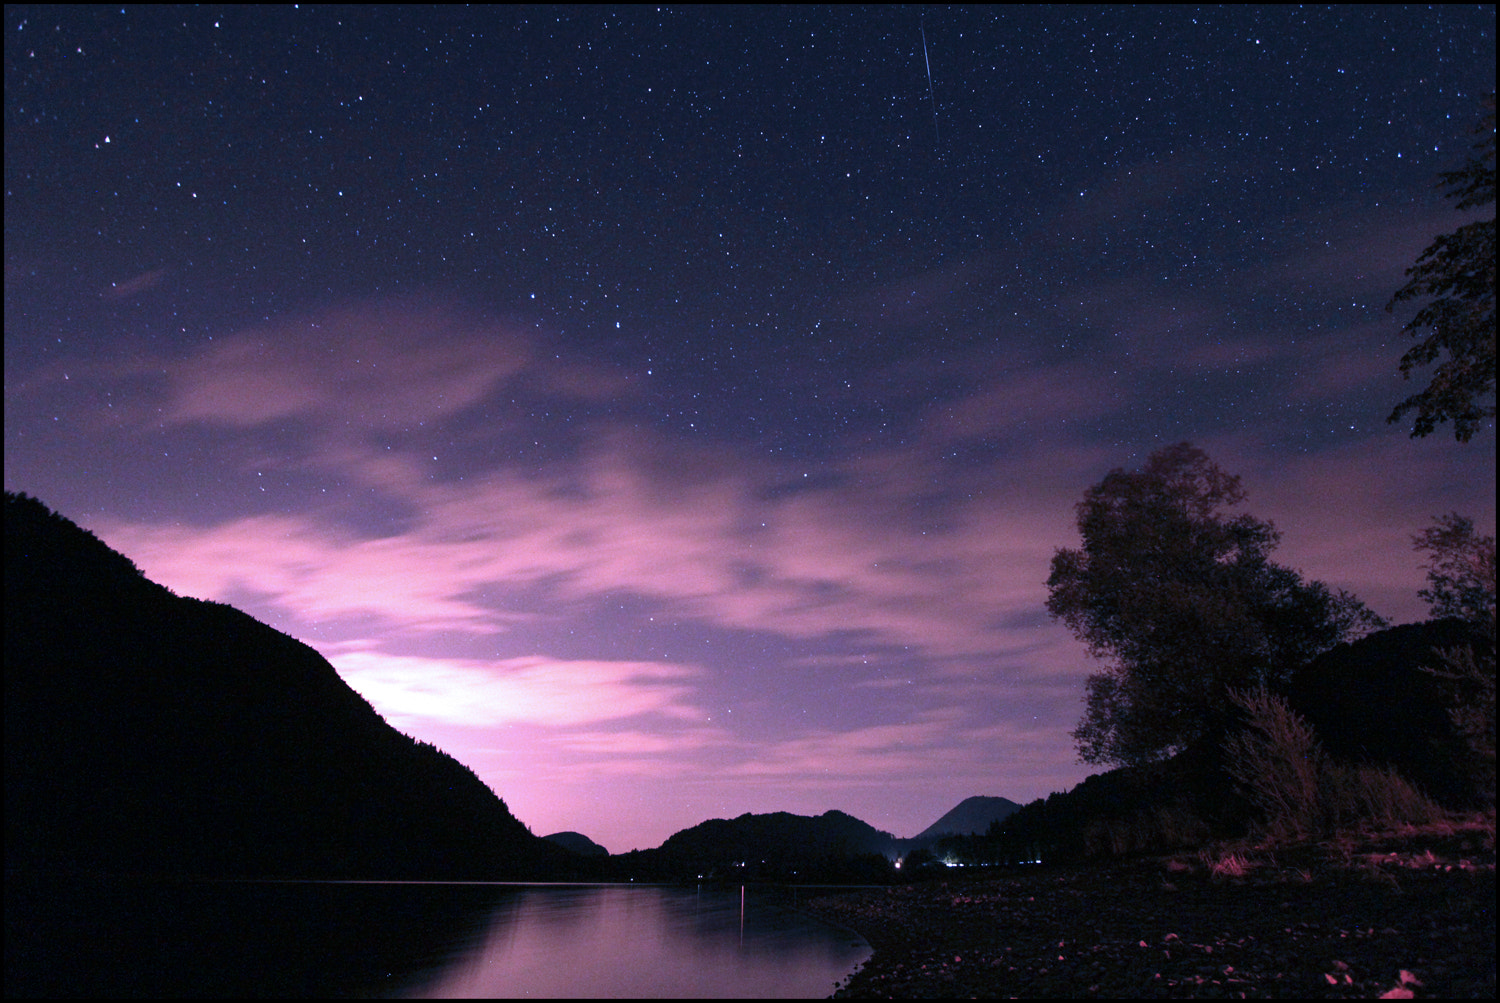 Photograph Hintersee x small shooting star by Mex Brunner on 500px